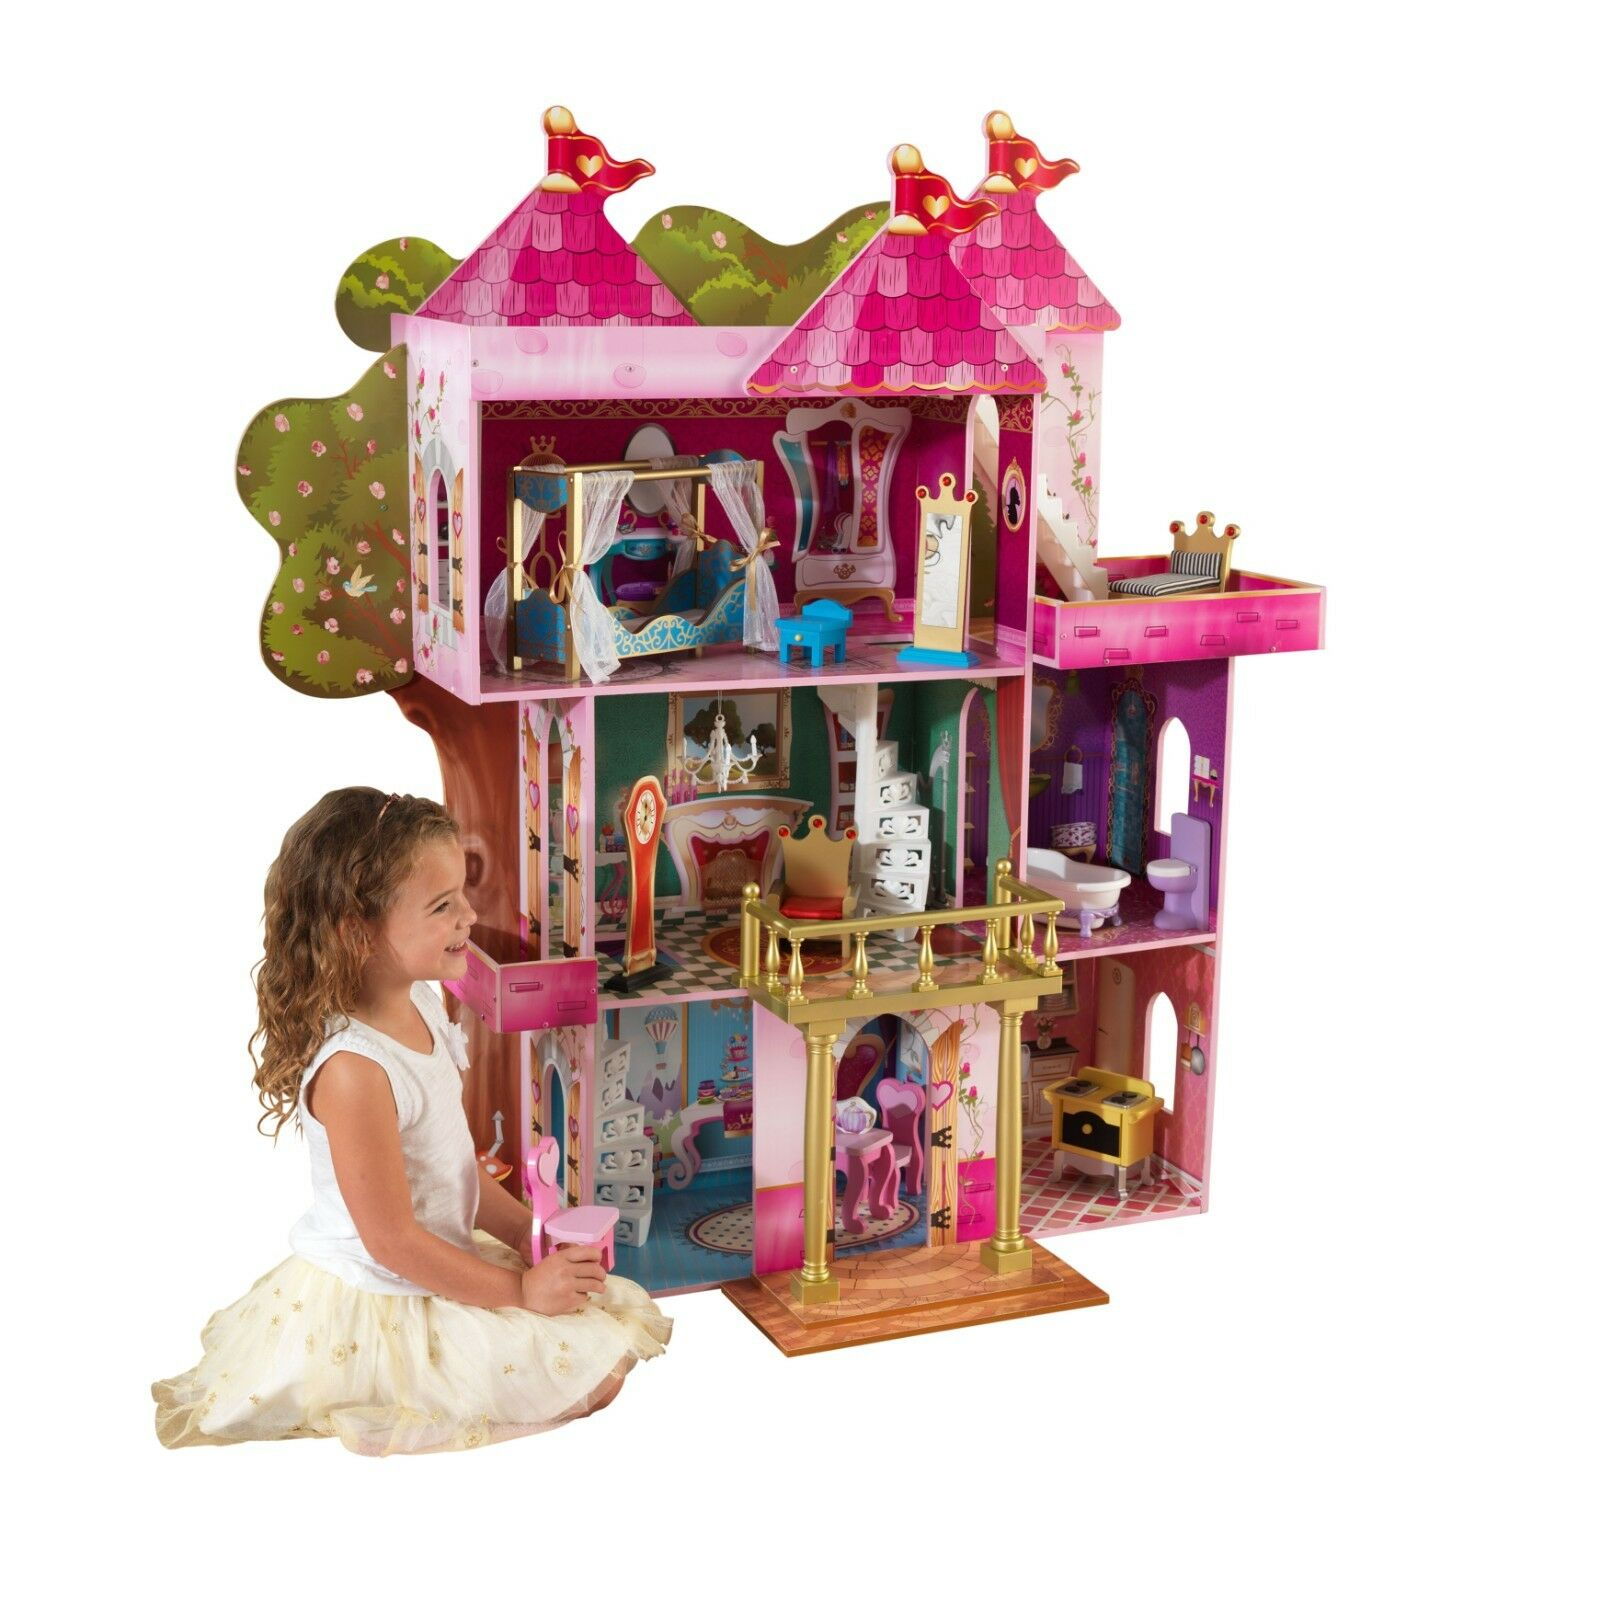 KidKraft Storybook Mansion Dollhouse 14 Accessories Playset Pretend Play Toy FUN